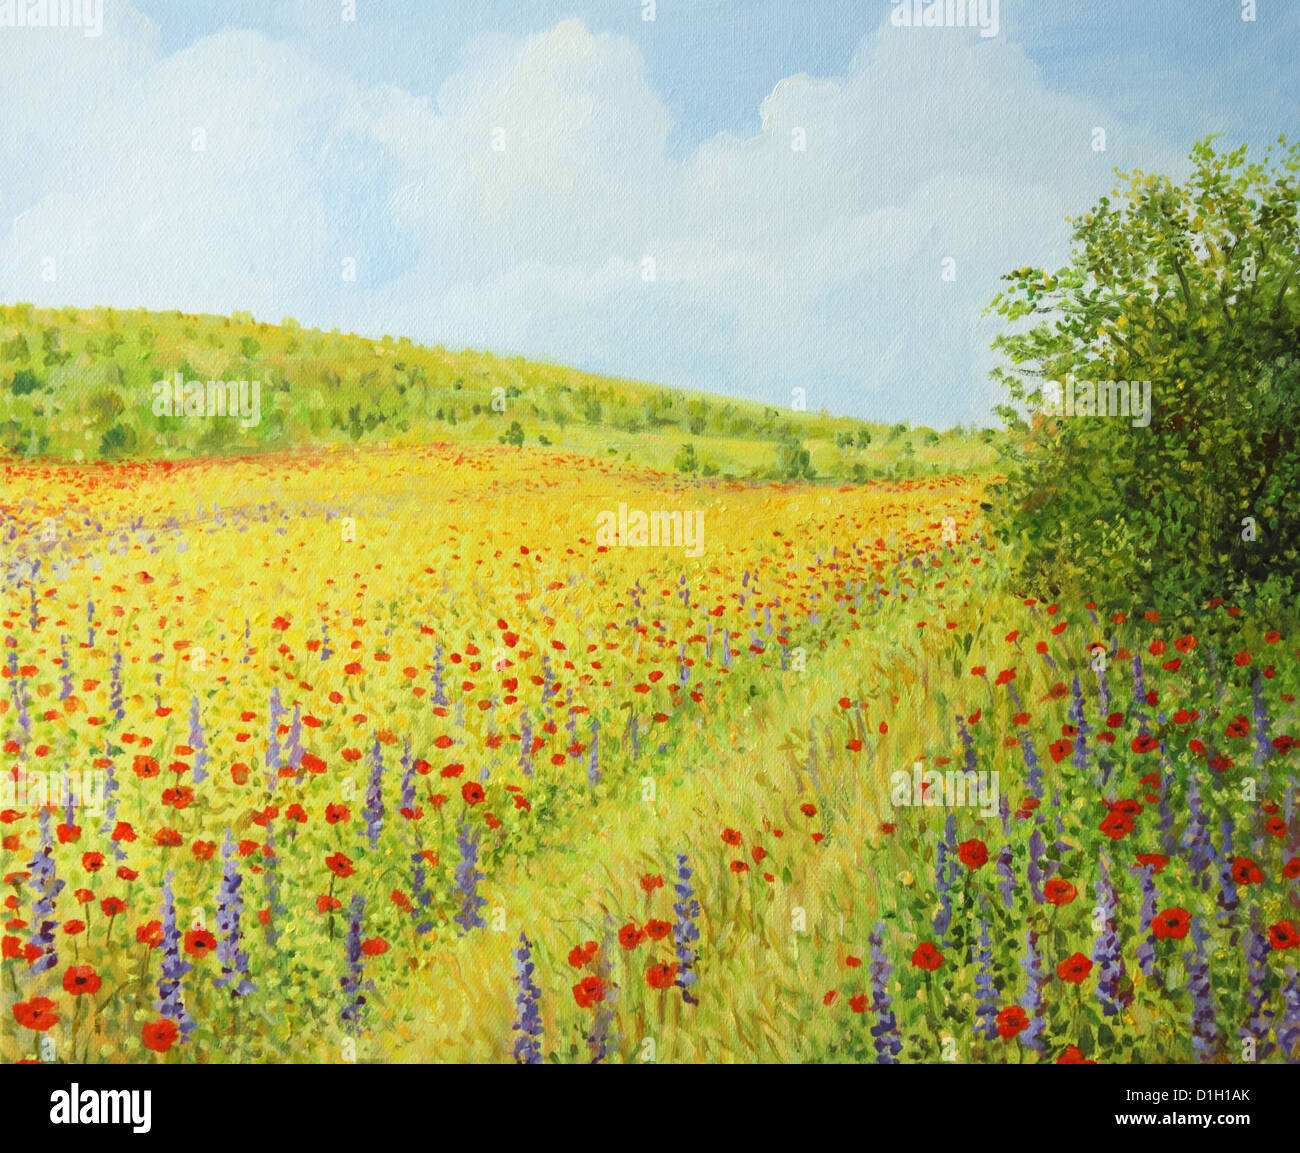 An Oil Painting On Canvas Of A Vibrant Field With Wild Spring